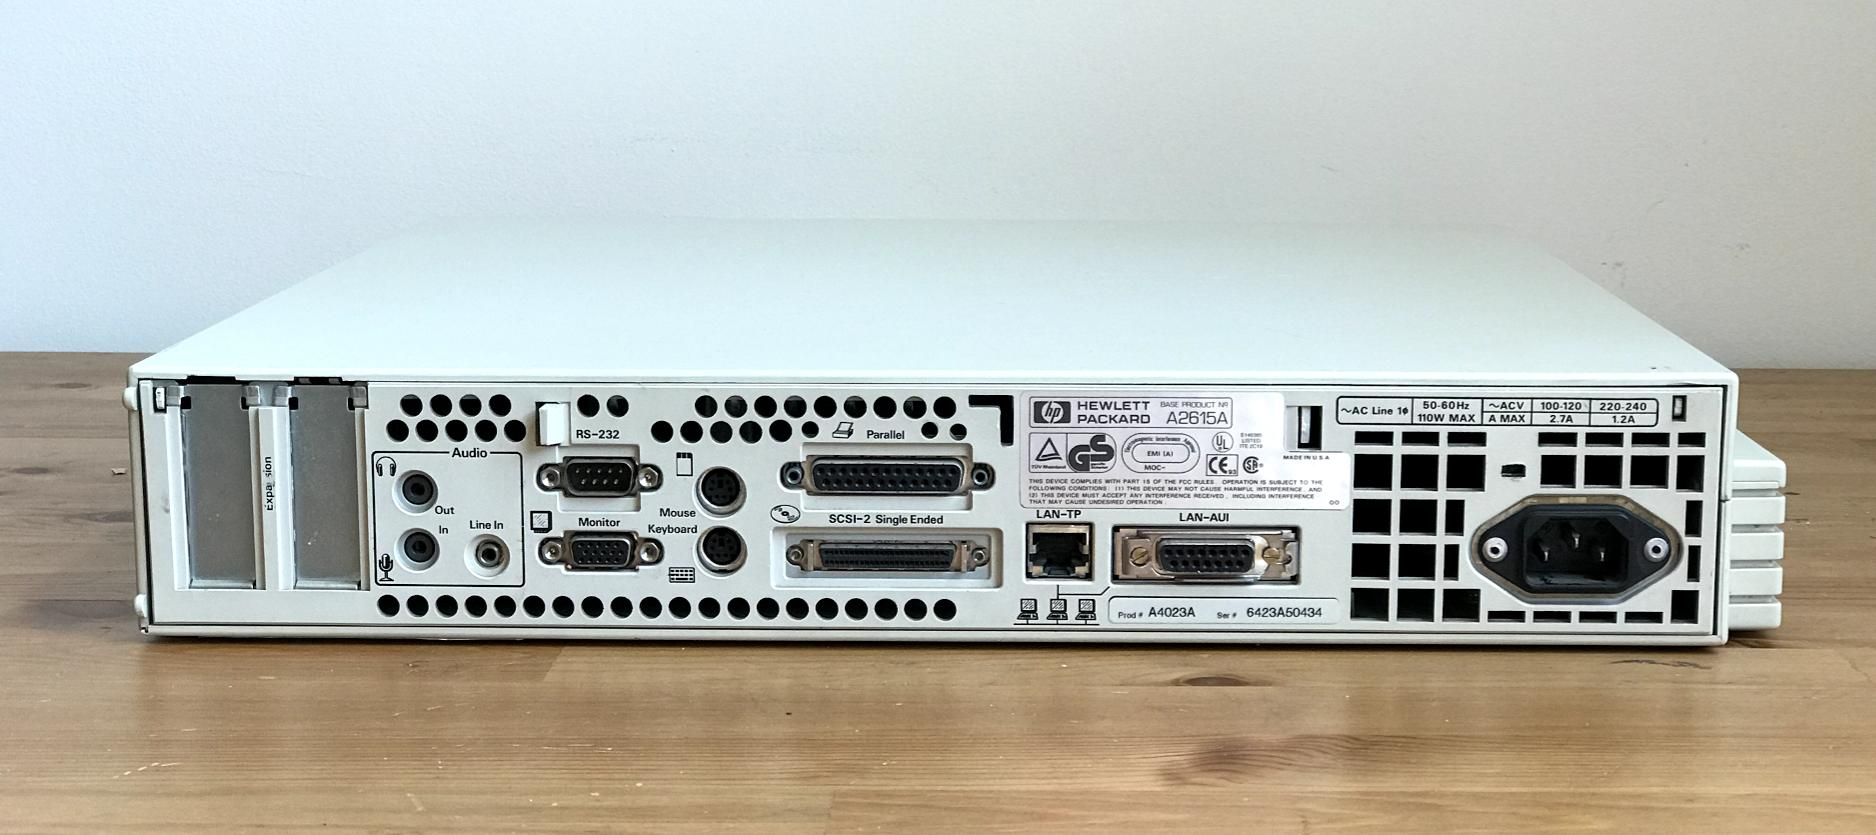 ports on the back of the hp712